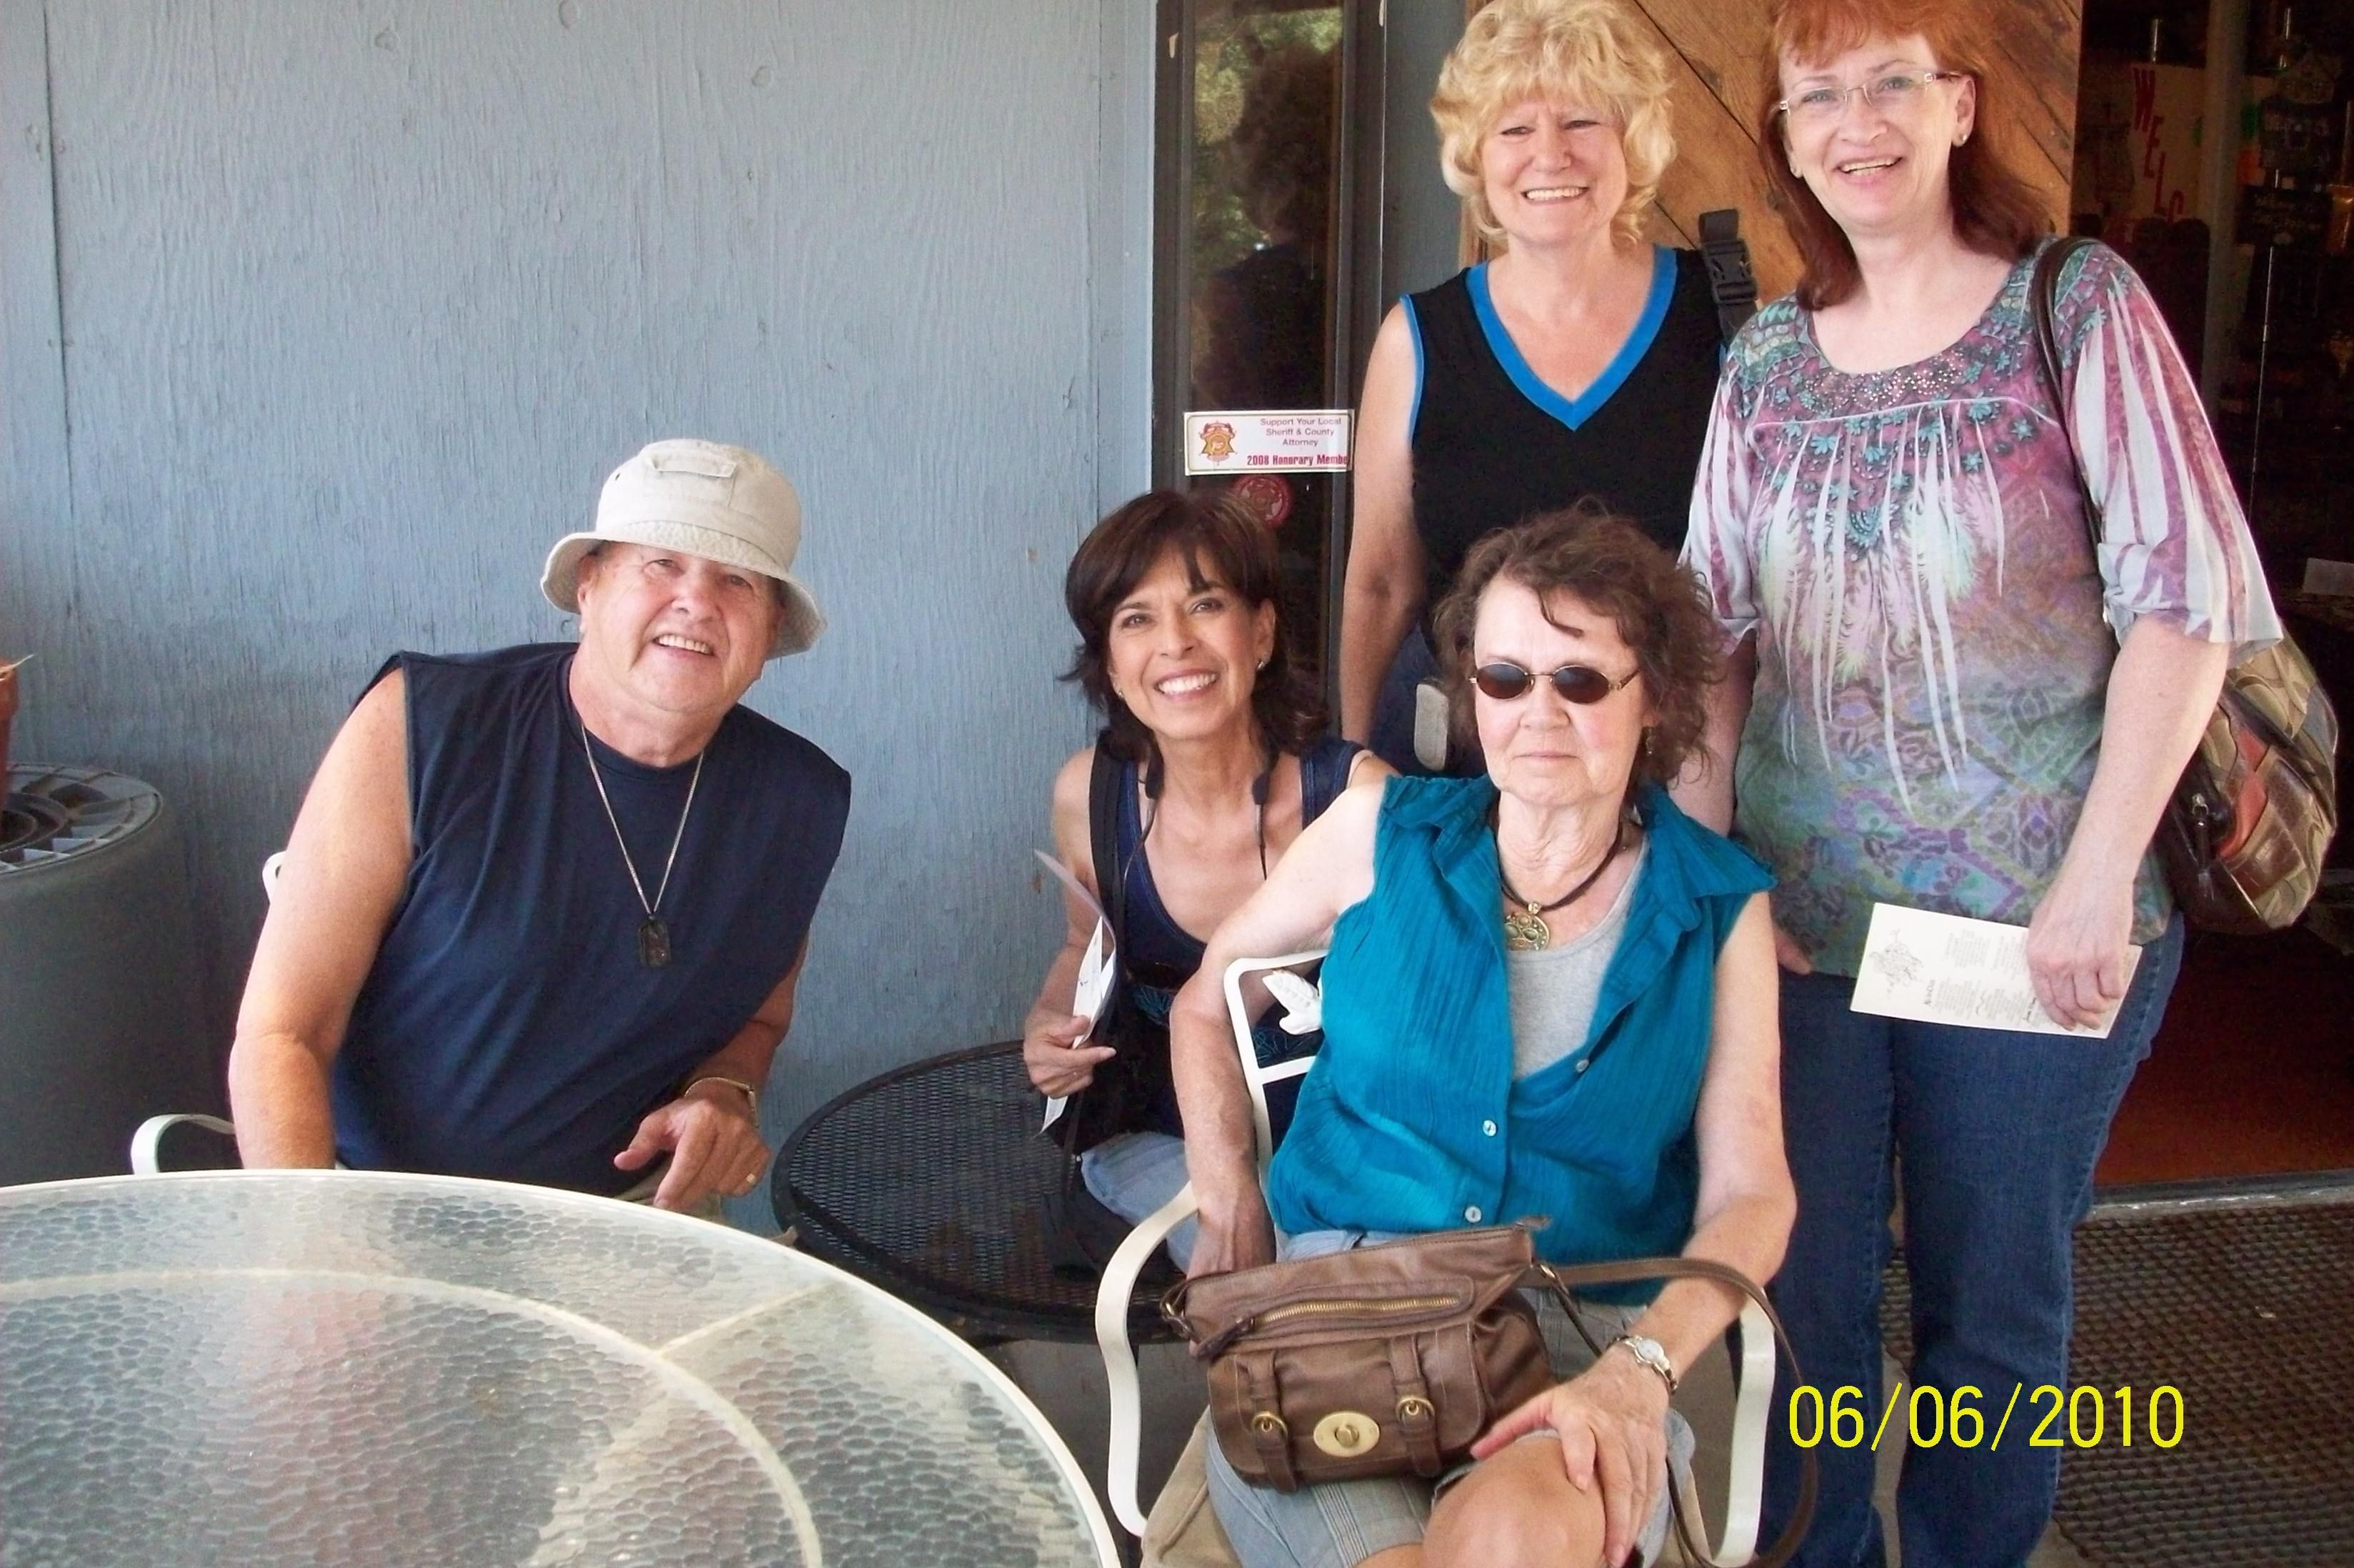 avondale mature singles All over 50 singles are invited to meet and socialize for coffee, team trivia, dine-out, day trips, dancing, happy hours, movies, concerts and whatever our members suggest to make this a fun.